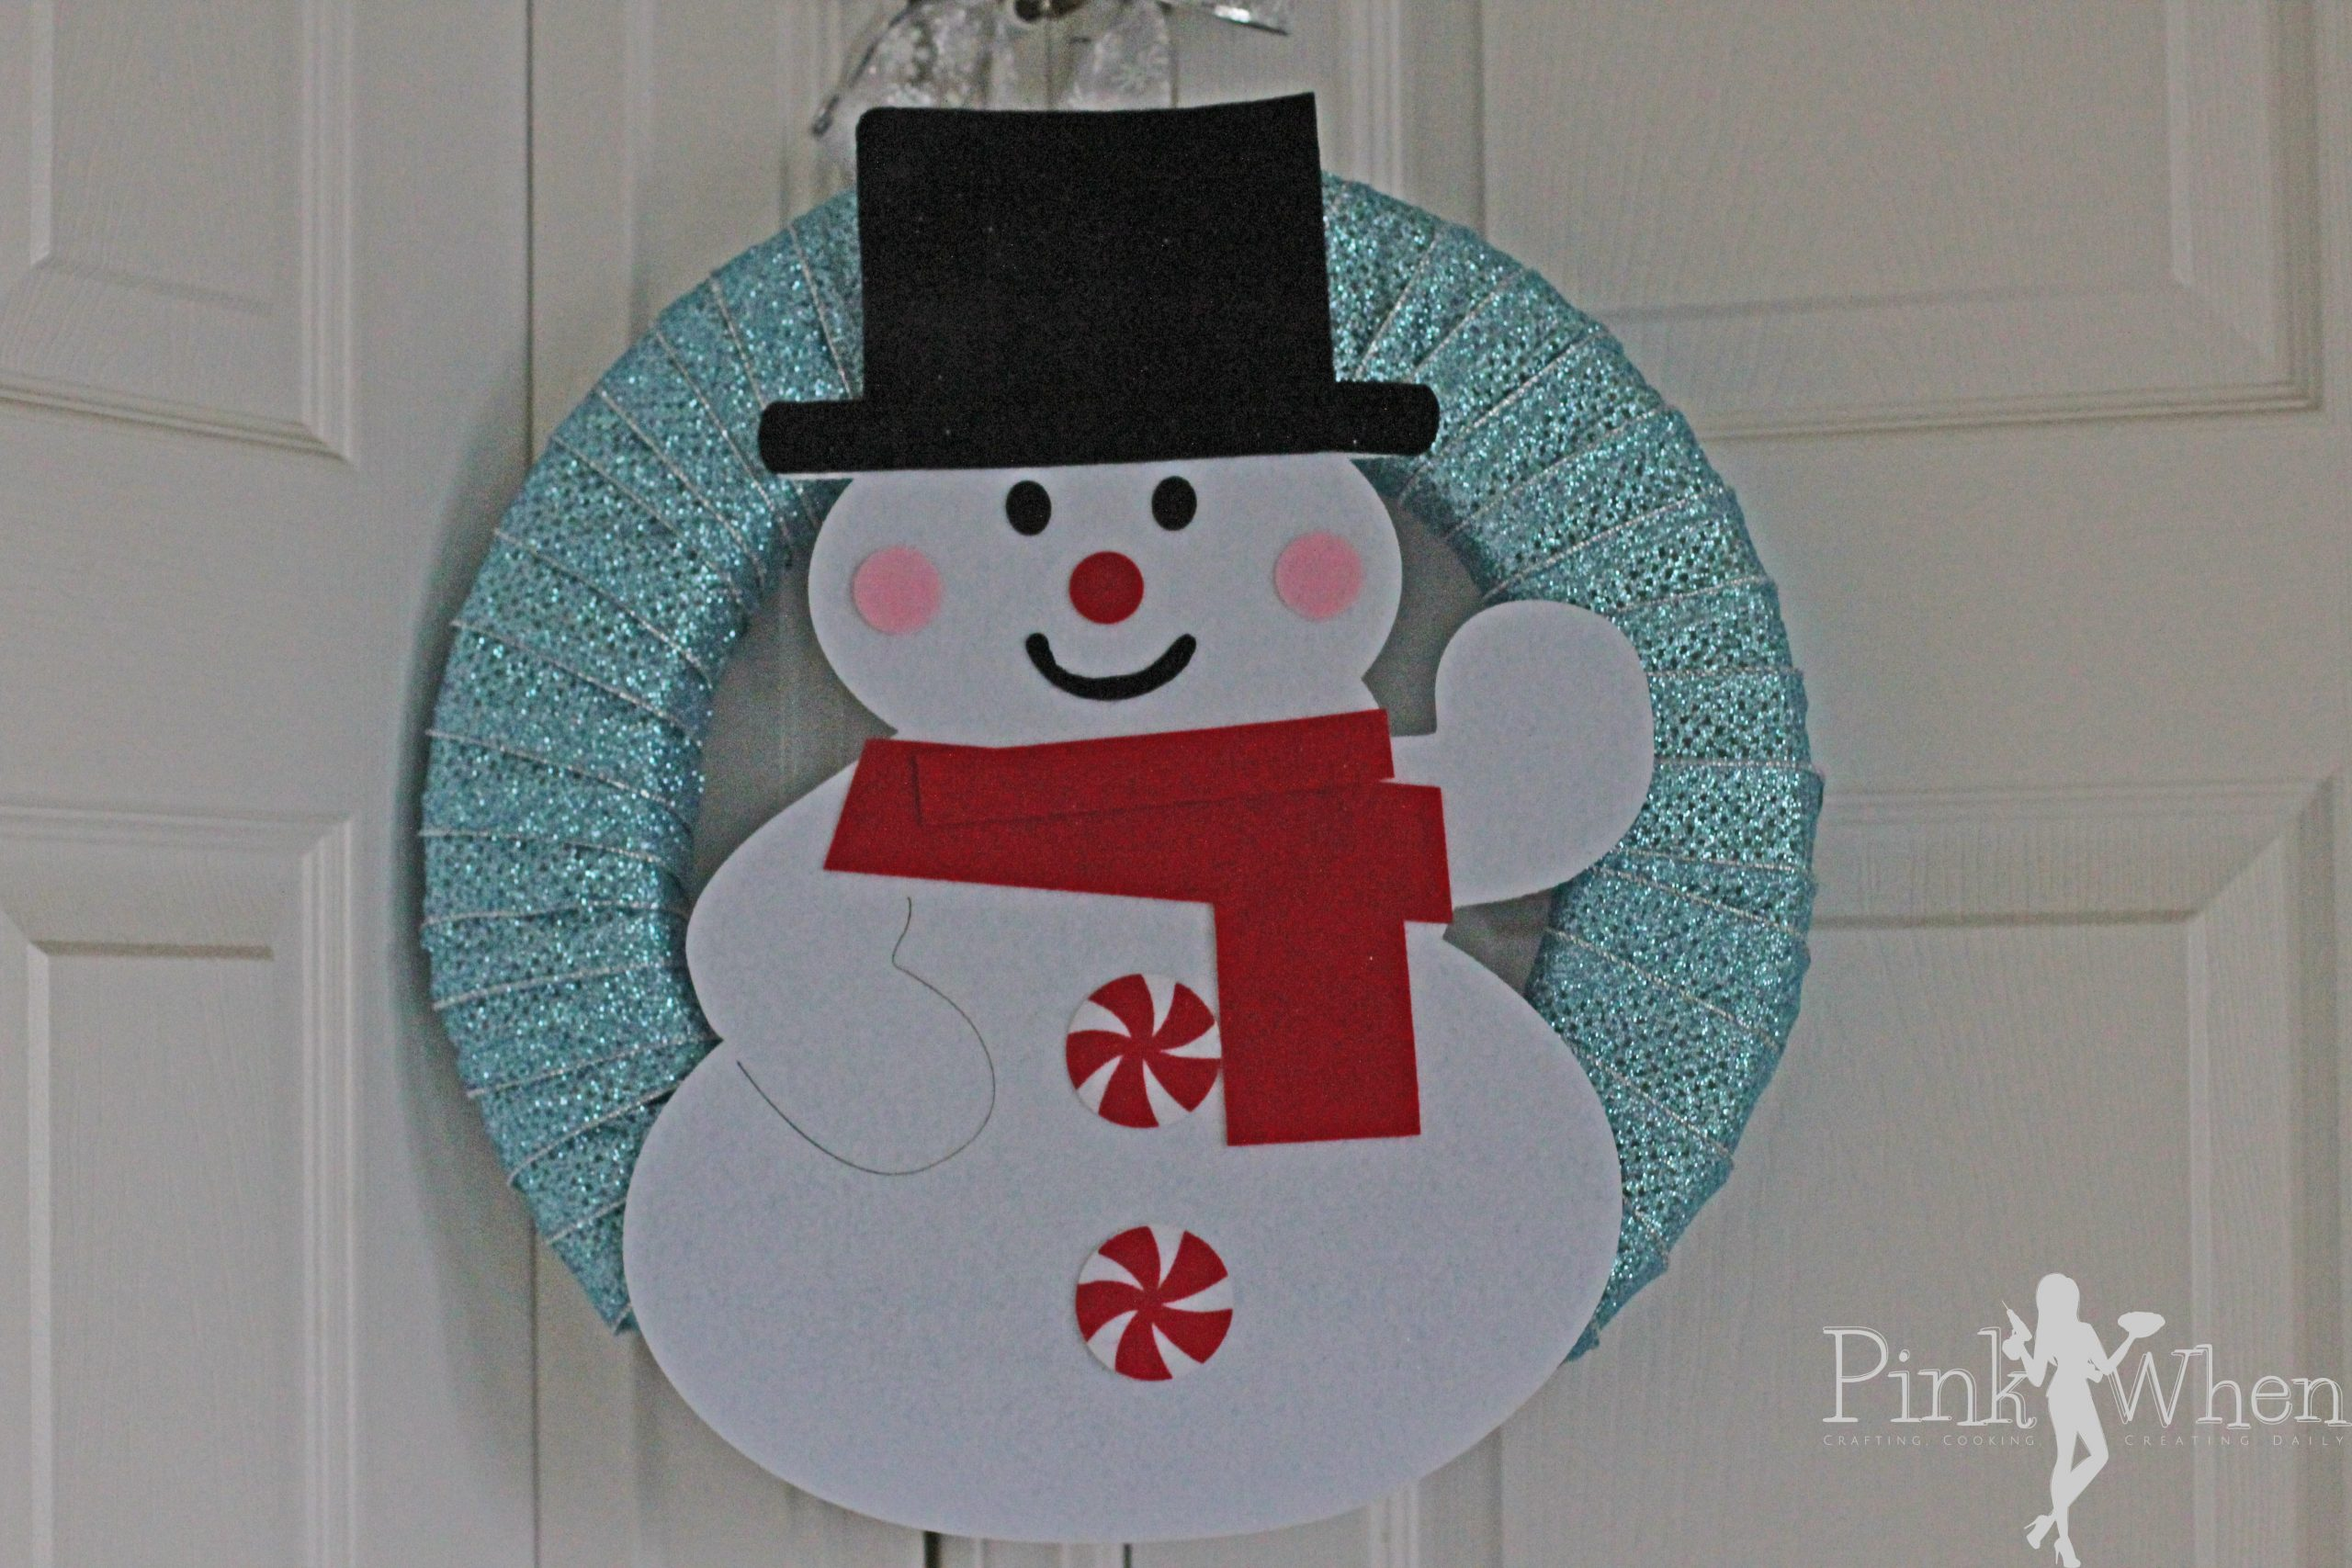 How to Make Snowman Wreath